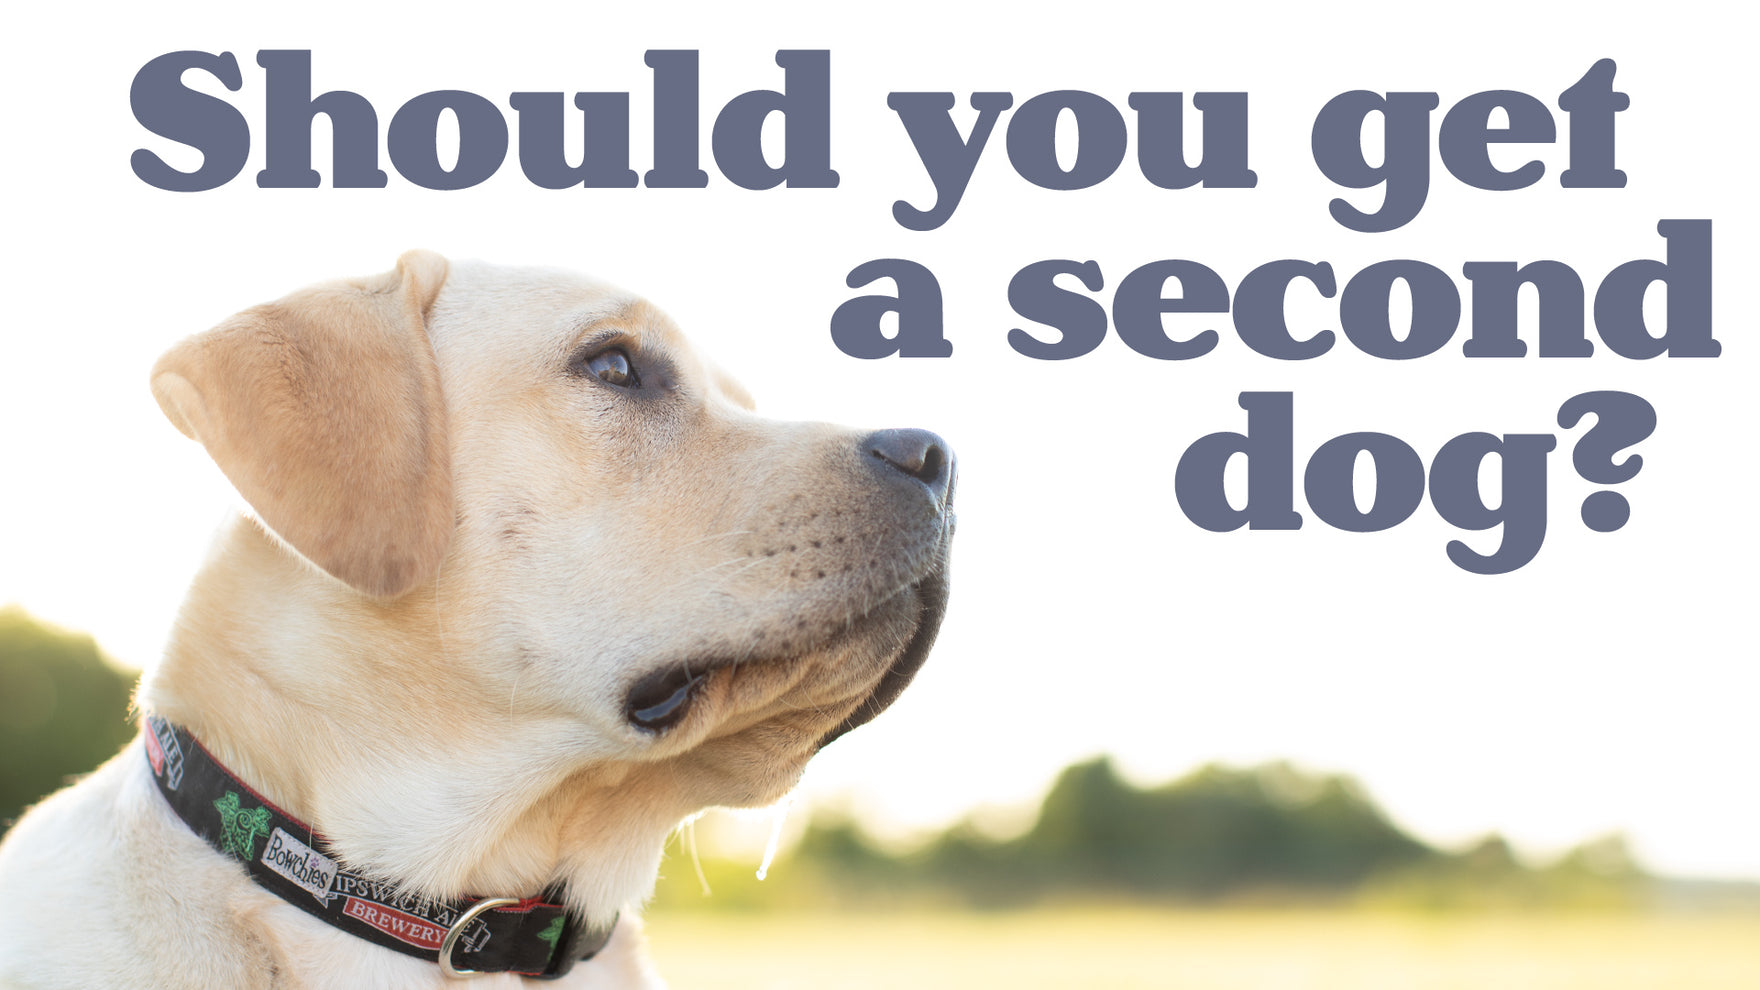 VIDEO - SHOULD YOU GET A SECOND DOG?